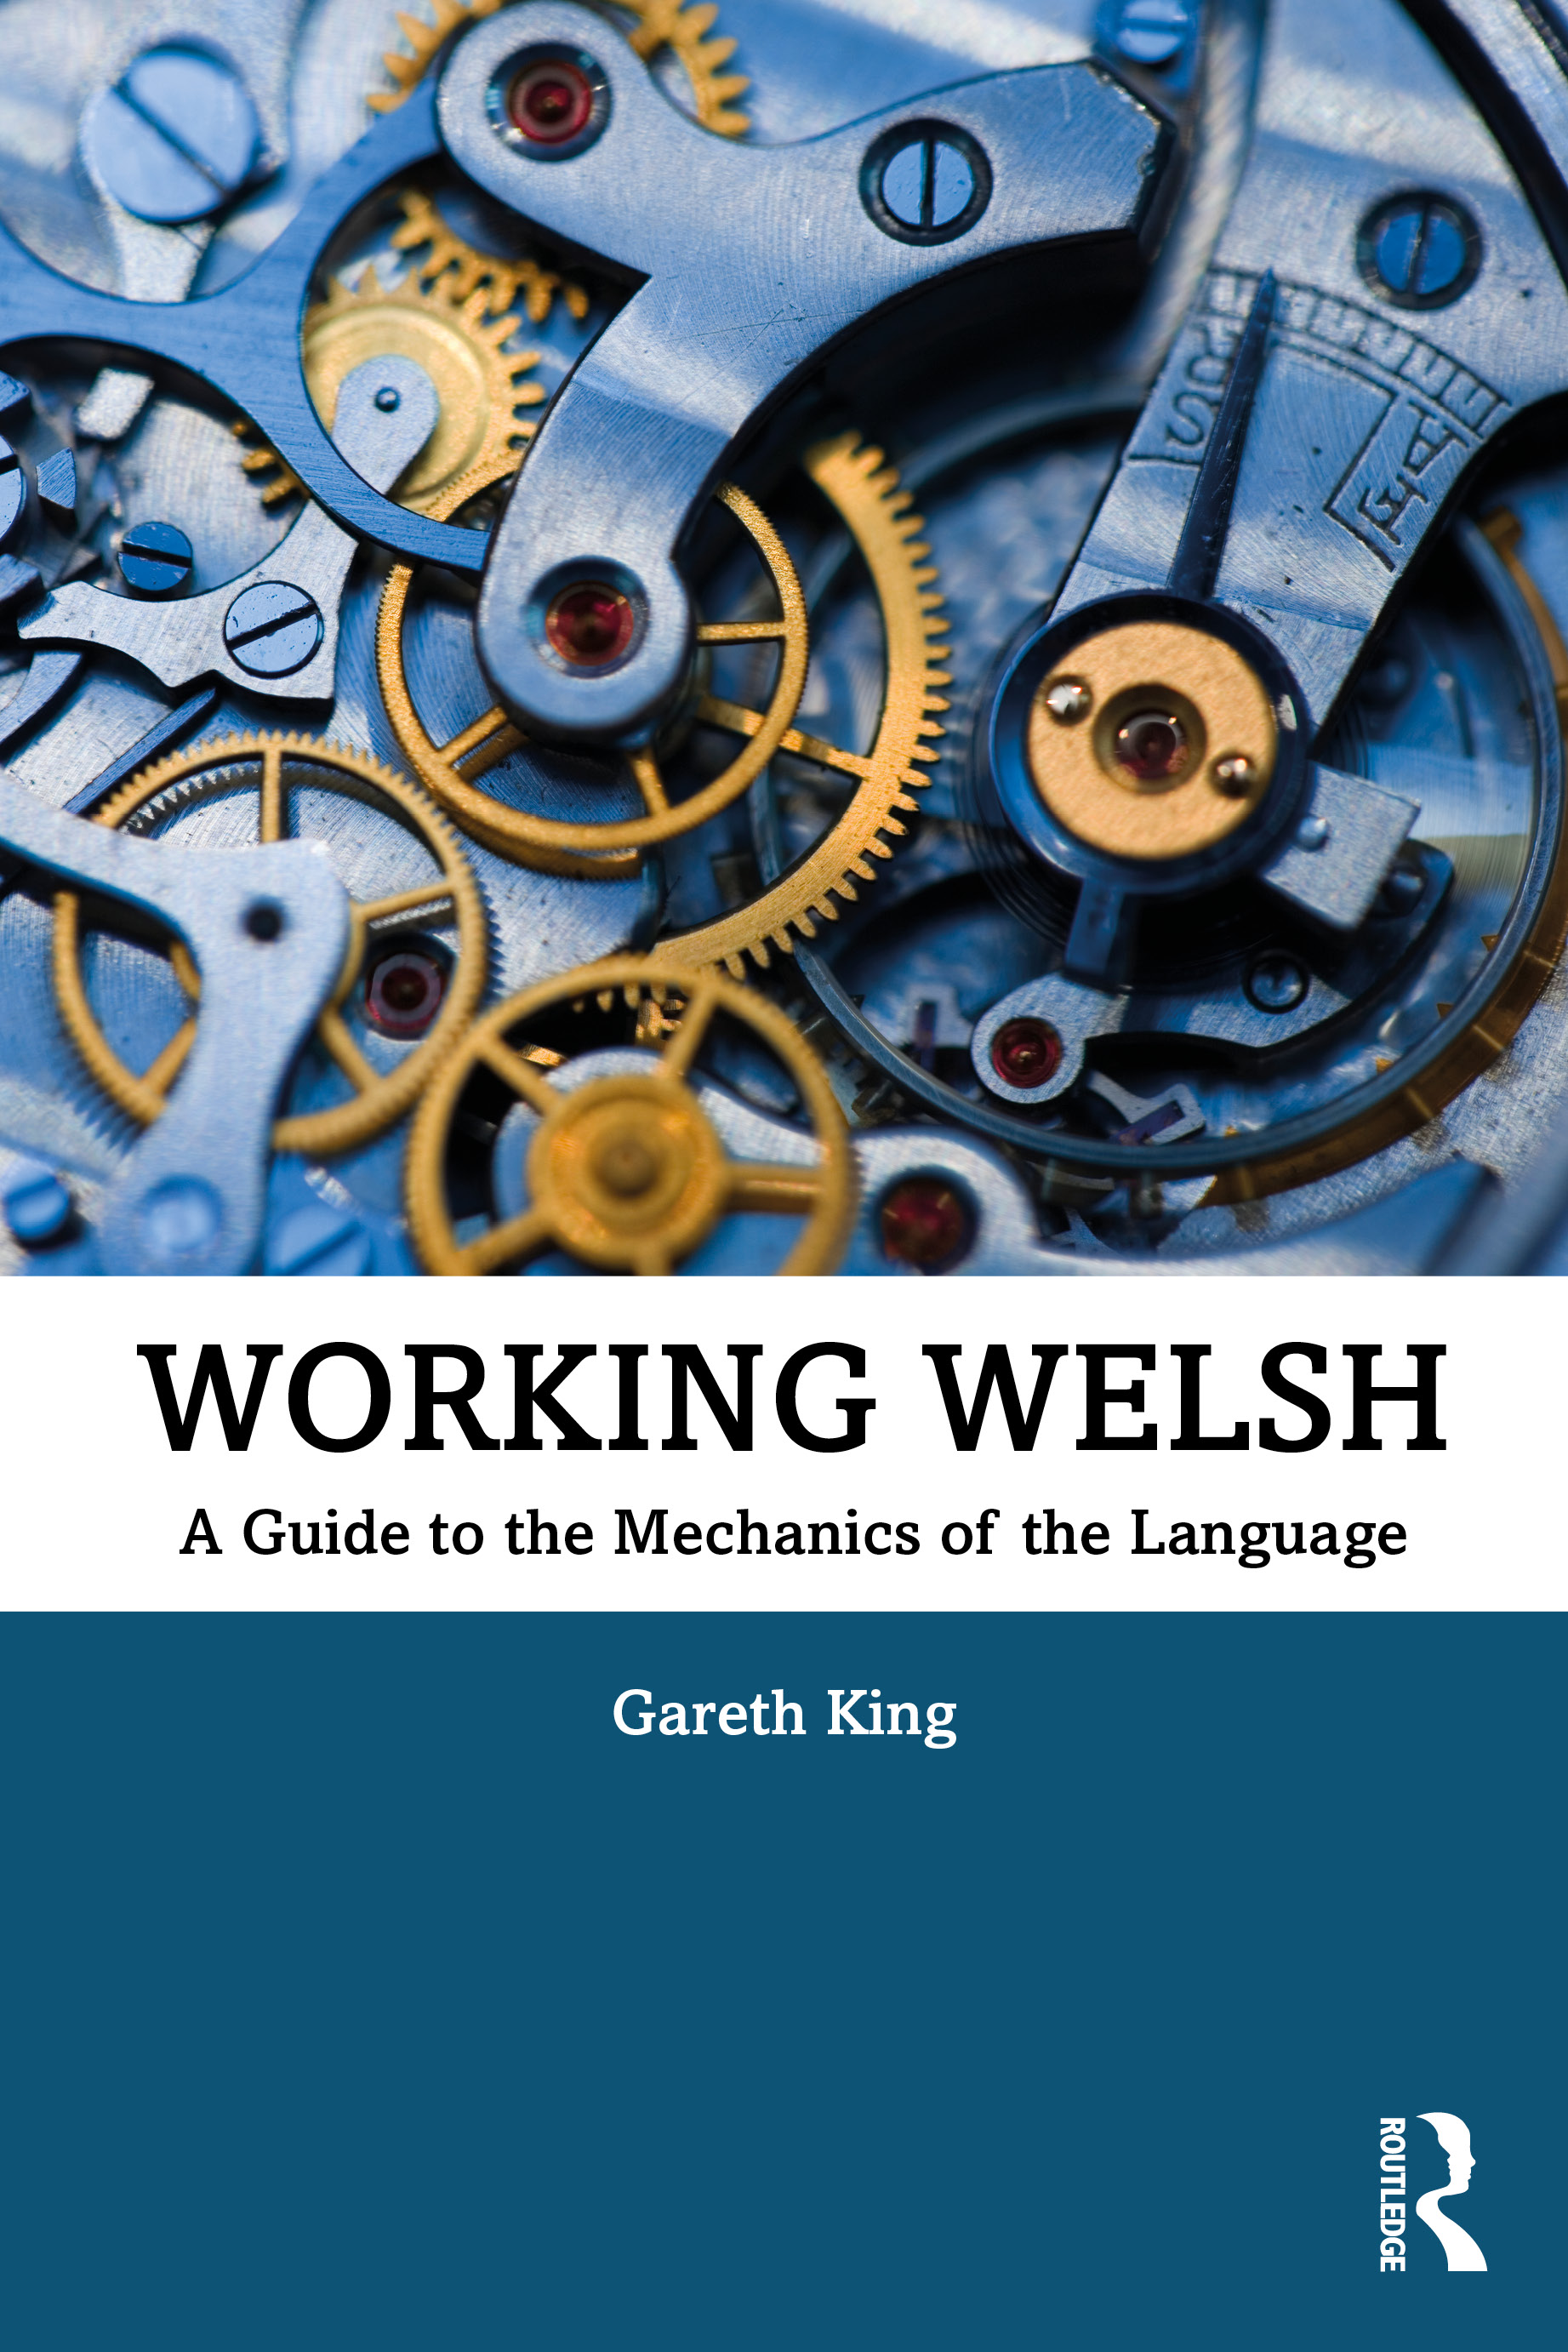 Working Welsh: A Guide to the Mechanics of the Language book cover